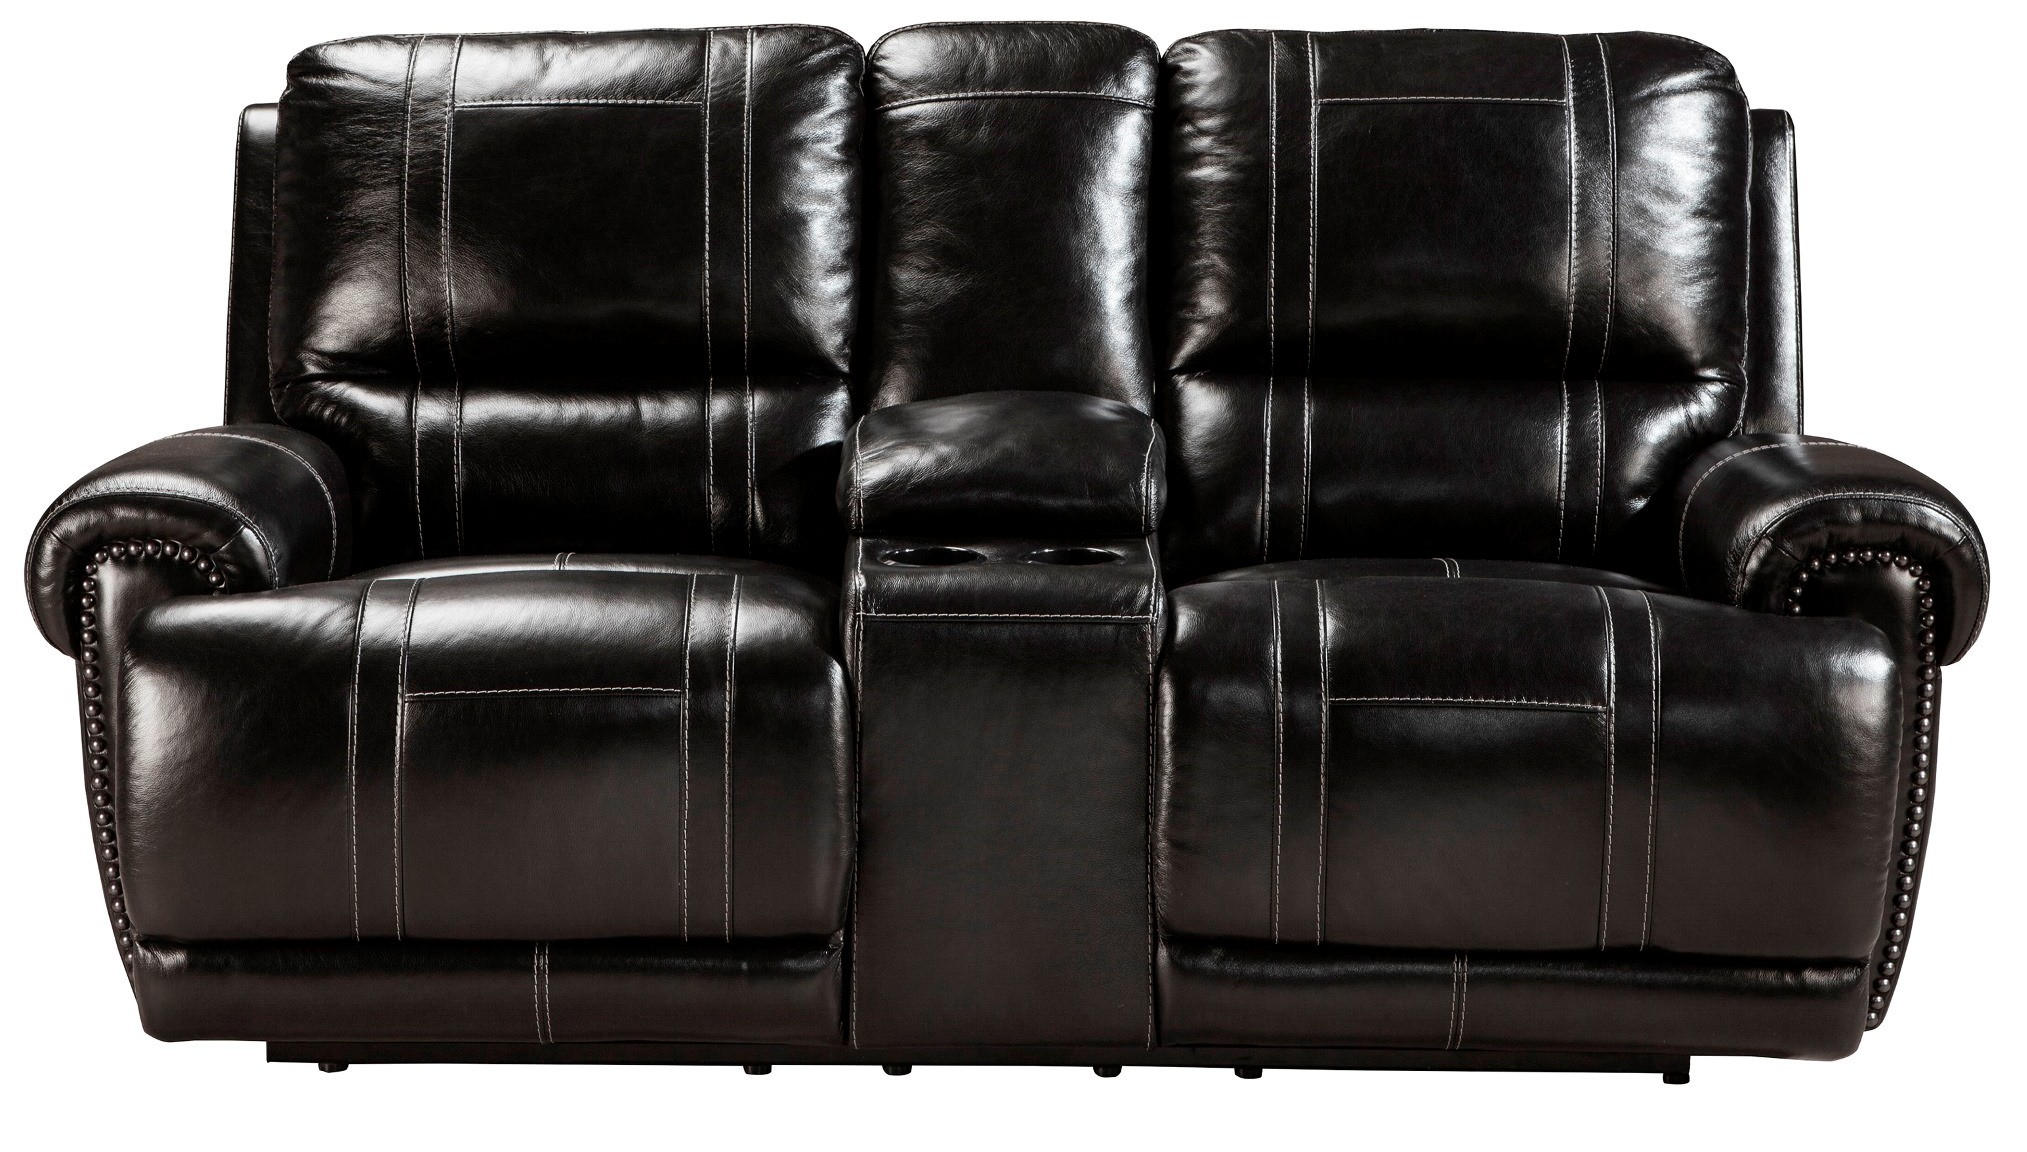 Paron Antique Double Power Reclining Loveseat With Console From Ashley U7590196 Coleman